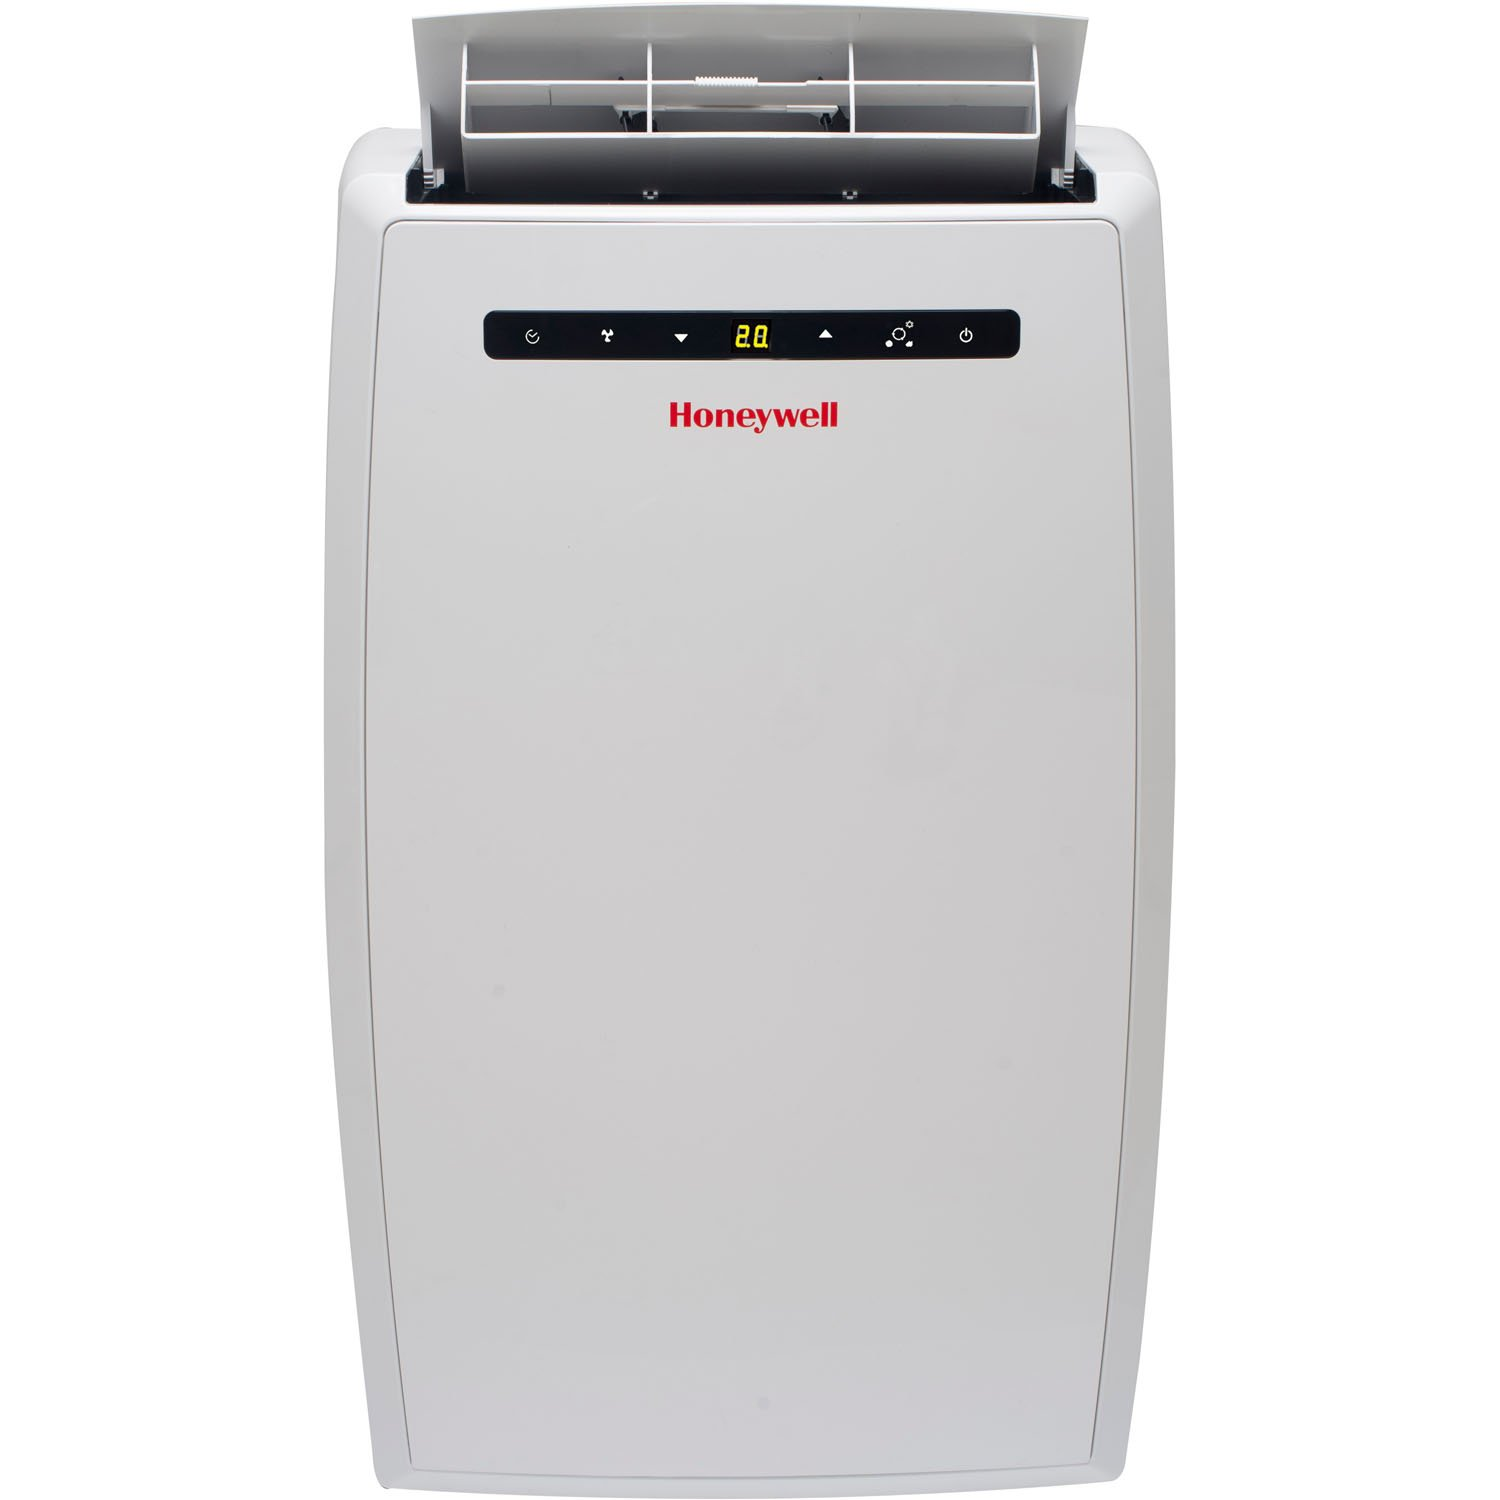 Portable Air Conditioner with Dehumidifier & Fan for Rooms Up To 550 Sq. Ft. with Remote Control in Black Honeywell MN12CESBB